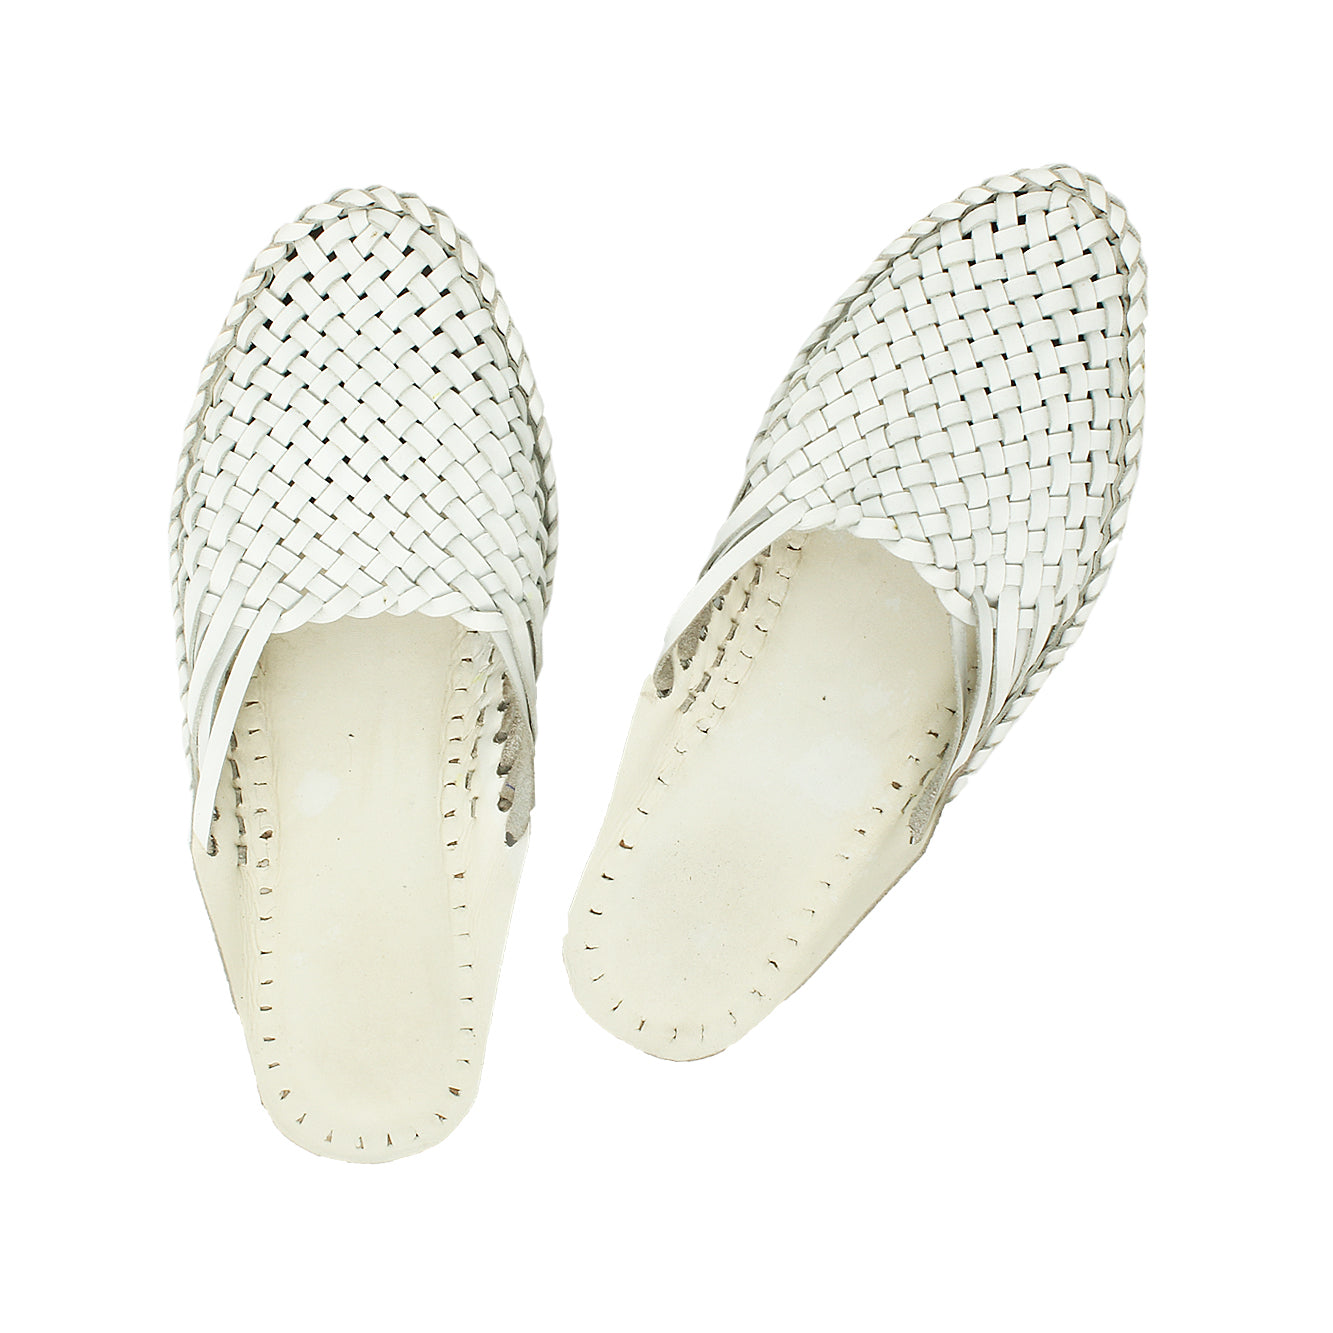 Premium Quality Remarkable White Formal Kolhapuri  Half Leather Shoe for Women KRKA-P-W-196